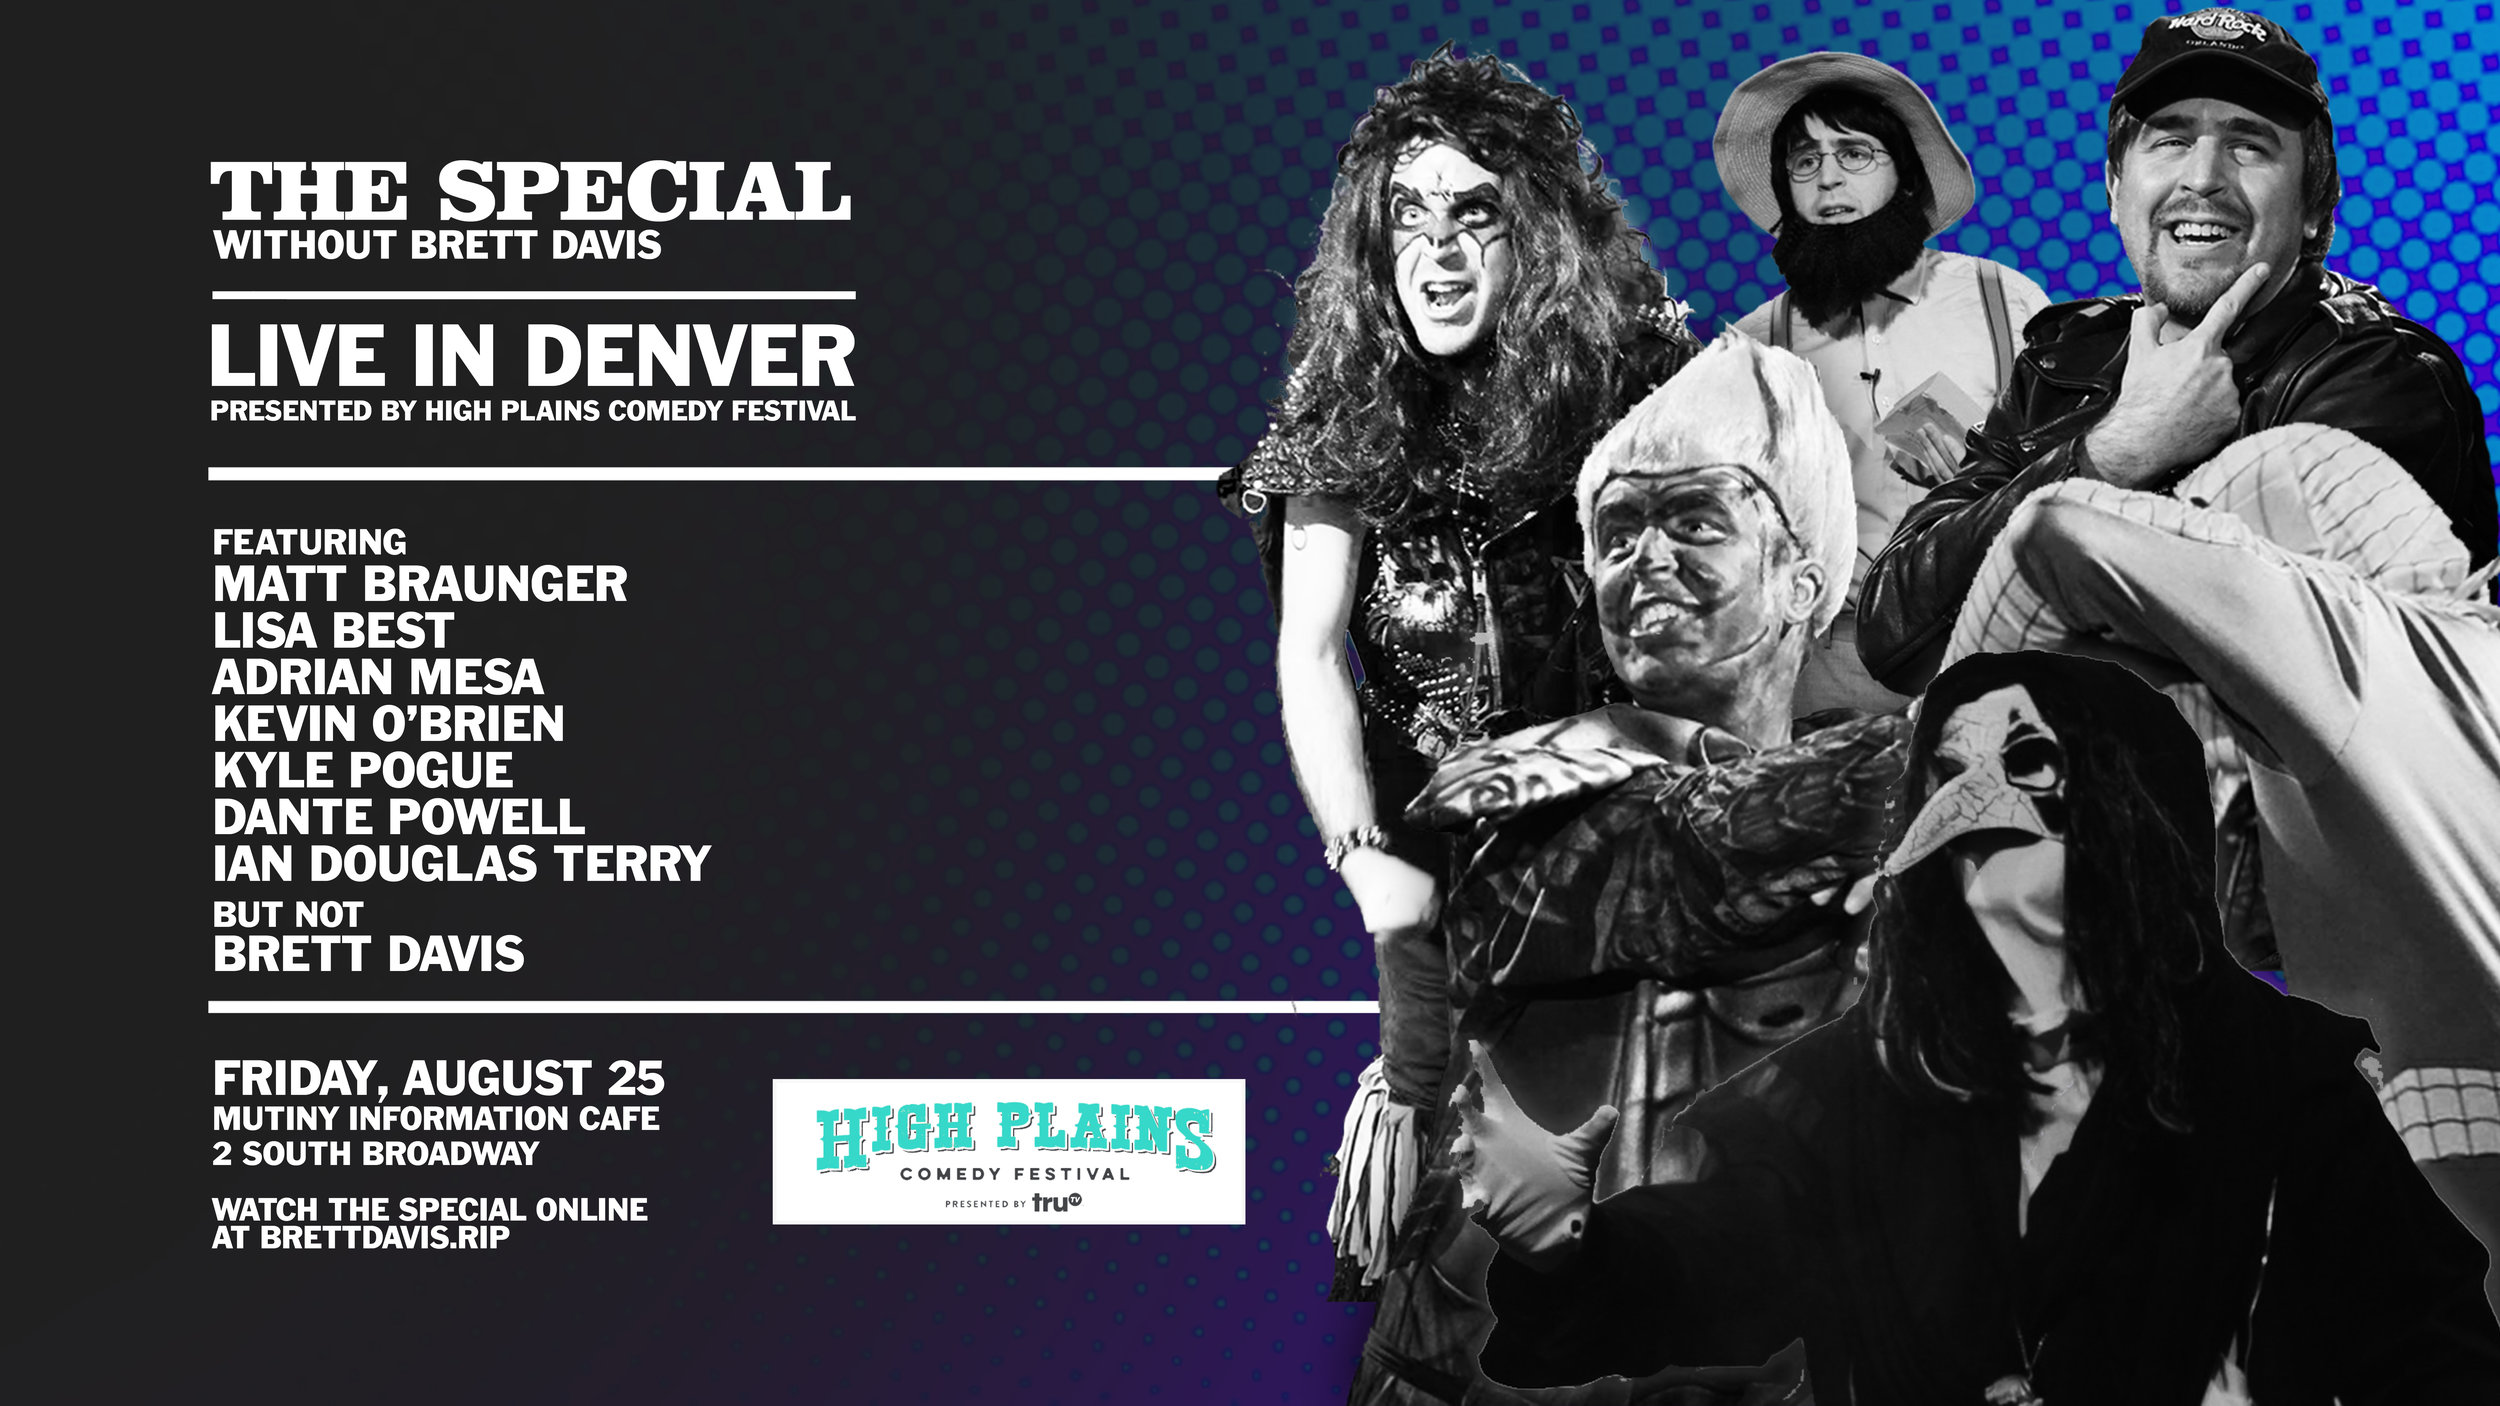 The Special Without Brett Davis will be a part of this year's  High Plains Comedy Festival ! NYC's wildest television show heads to Denver for an unpredictable night with these great performers:  Featuring MATT BRAUNGER  LISA BEST ADRIAN MESA KEVIN O'BRIEN KYLE POGUE DANTE POWELL IAN DOUGLAS TERRY And of course, not BRETT DAVIS  Get tickets here: https://nightout.com/events/the-special-without-brett-davis-5th-annual-high-plains-comedy-festival/tickets